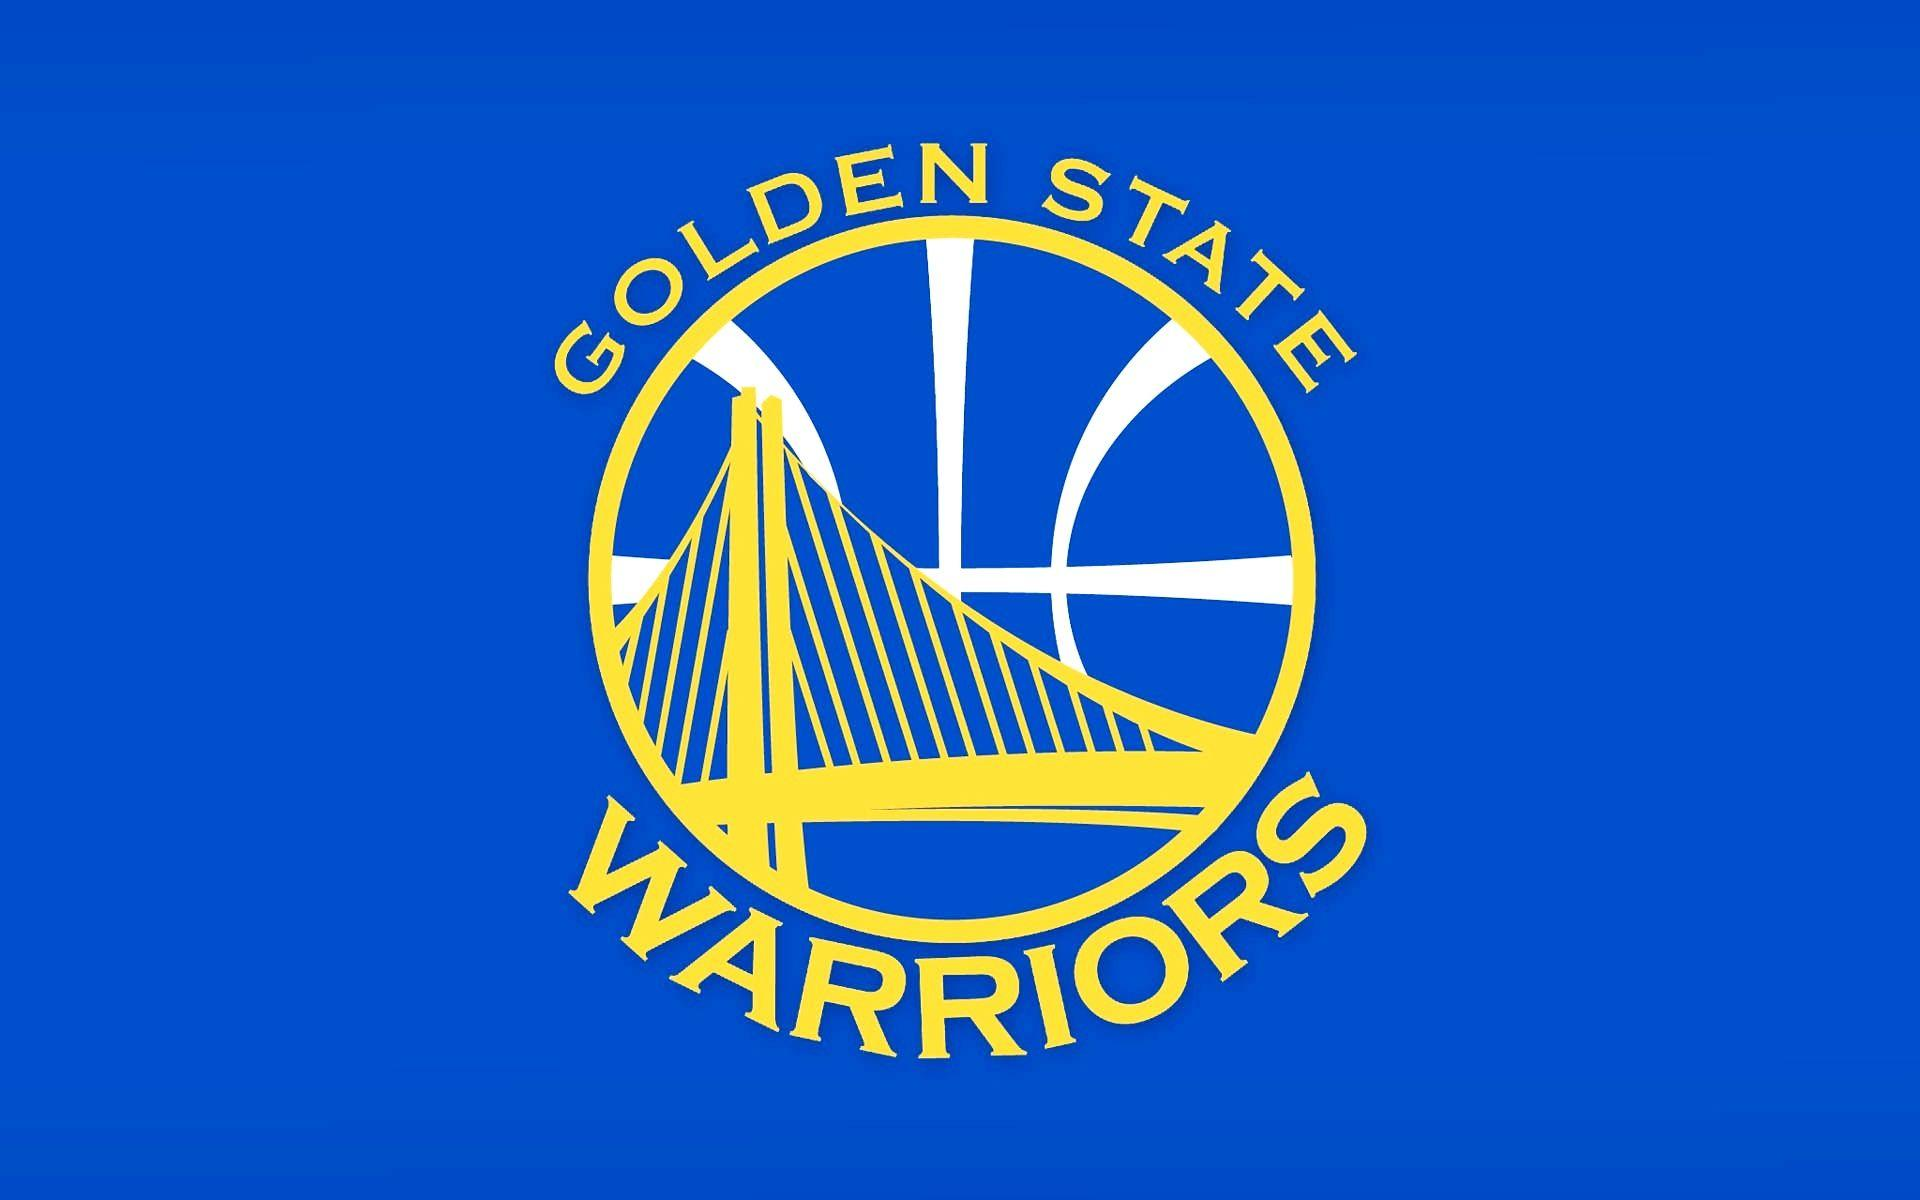 Golden State Warriors Logo Wallpaper Basketball Team